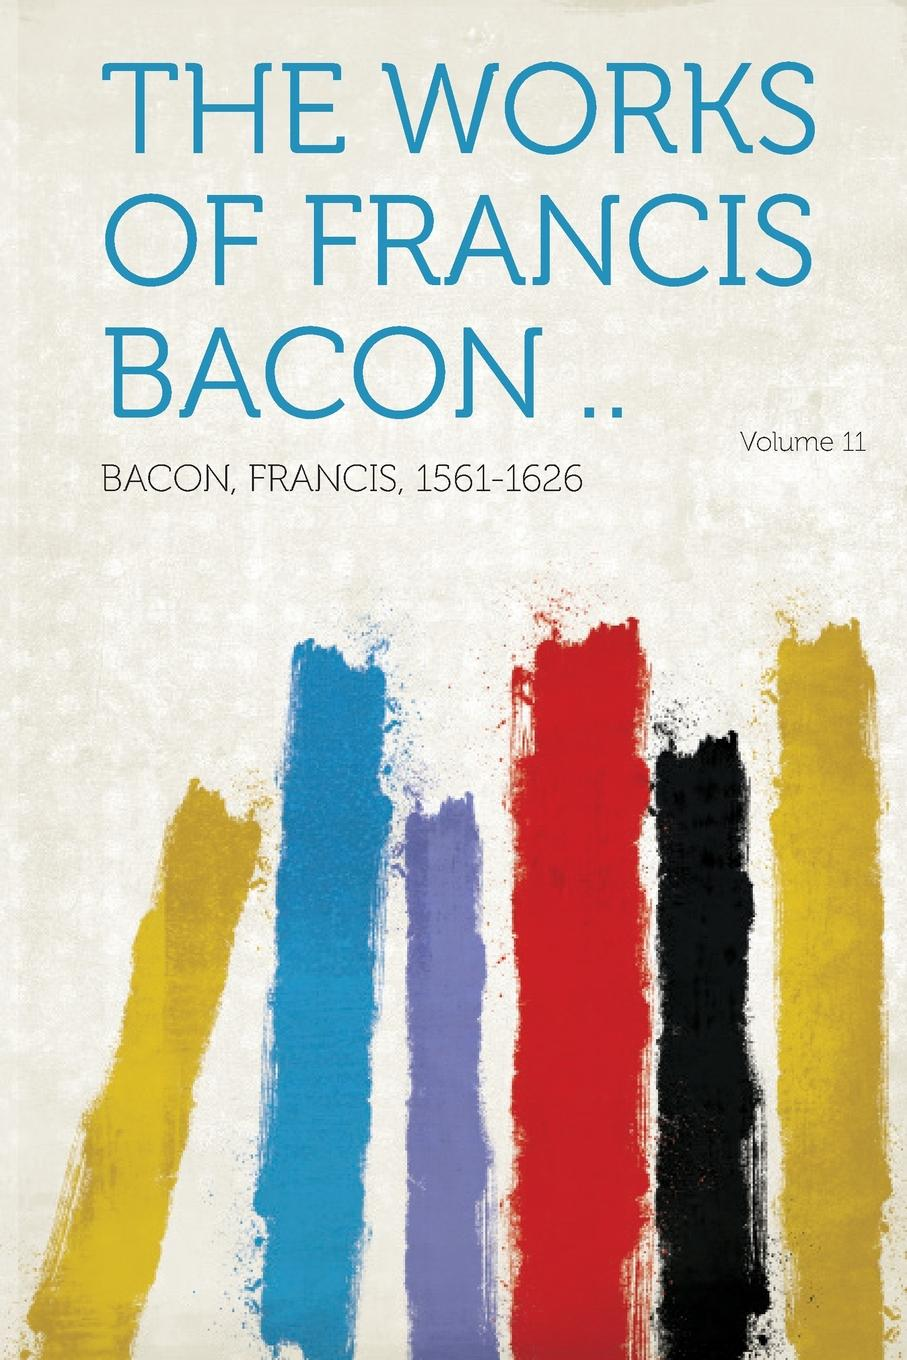 Francis Bacon The Works of Francis Bacon .. Volume 11 фрэнсис бэкон the works of francis bacon volume 11